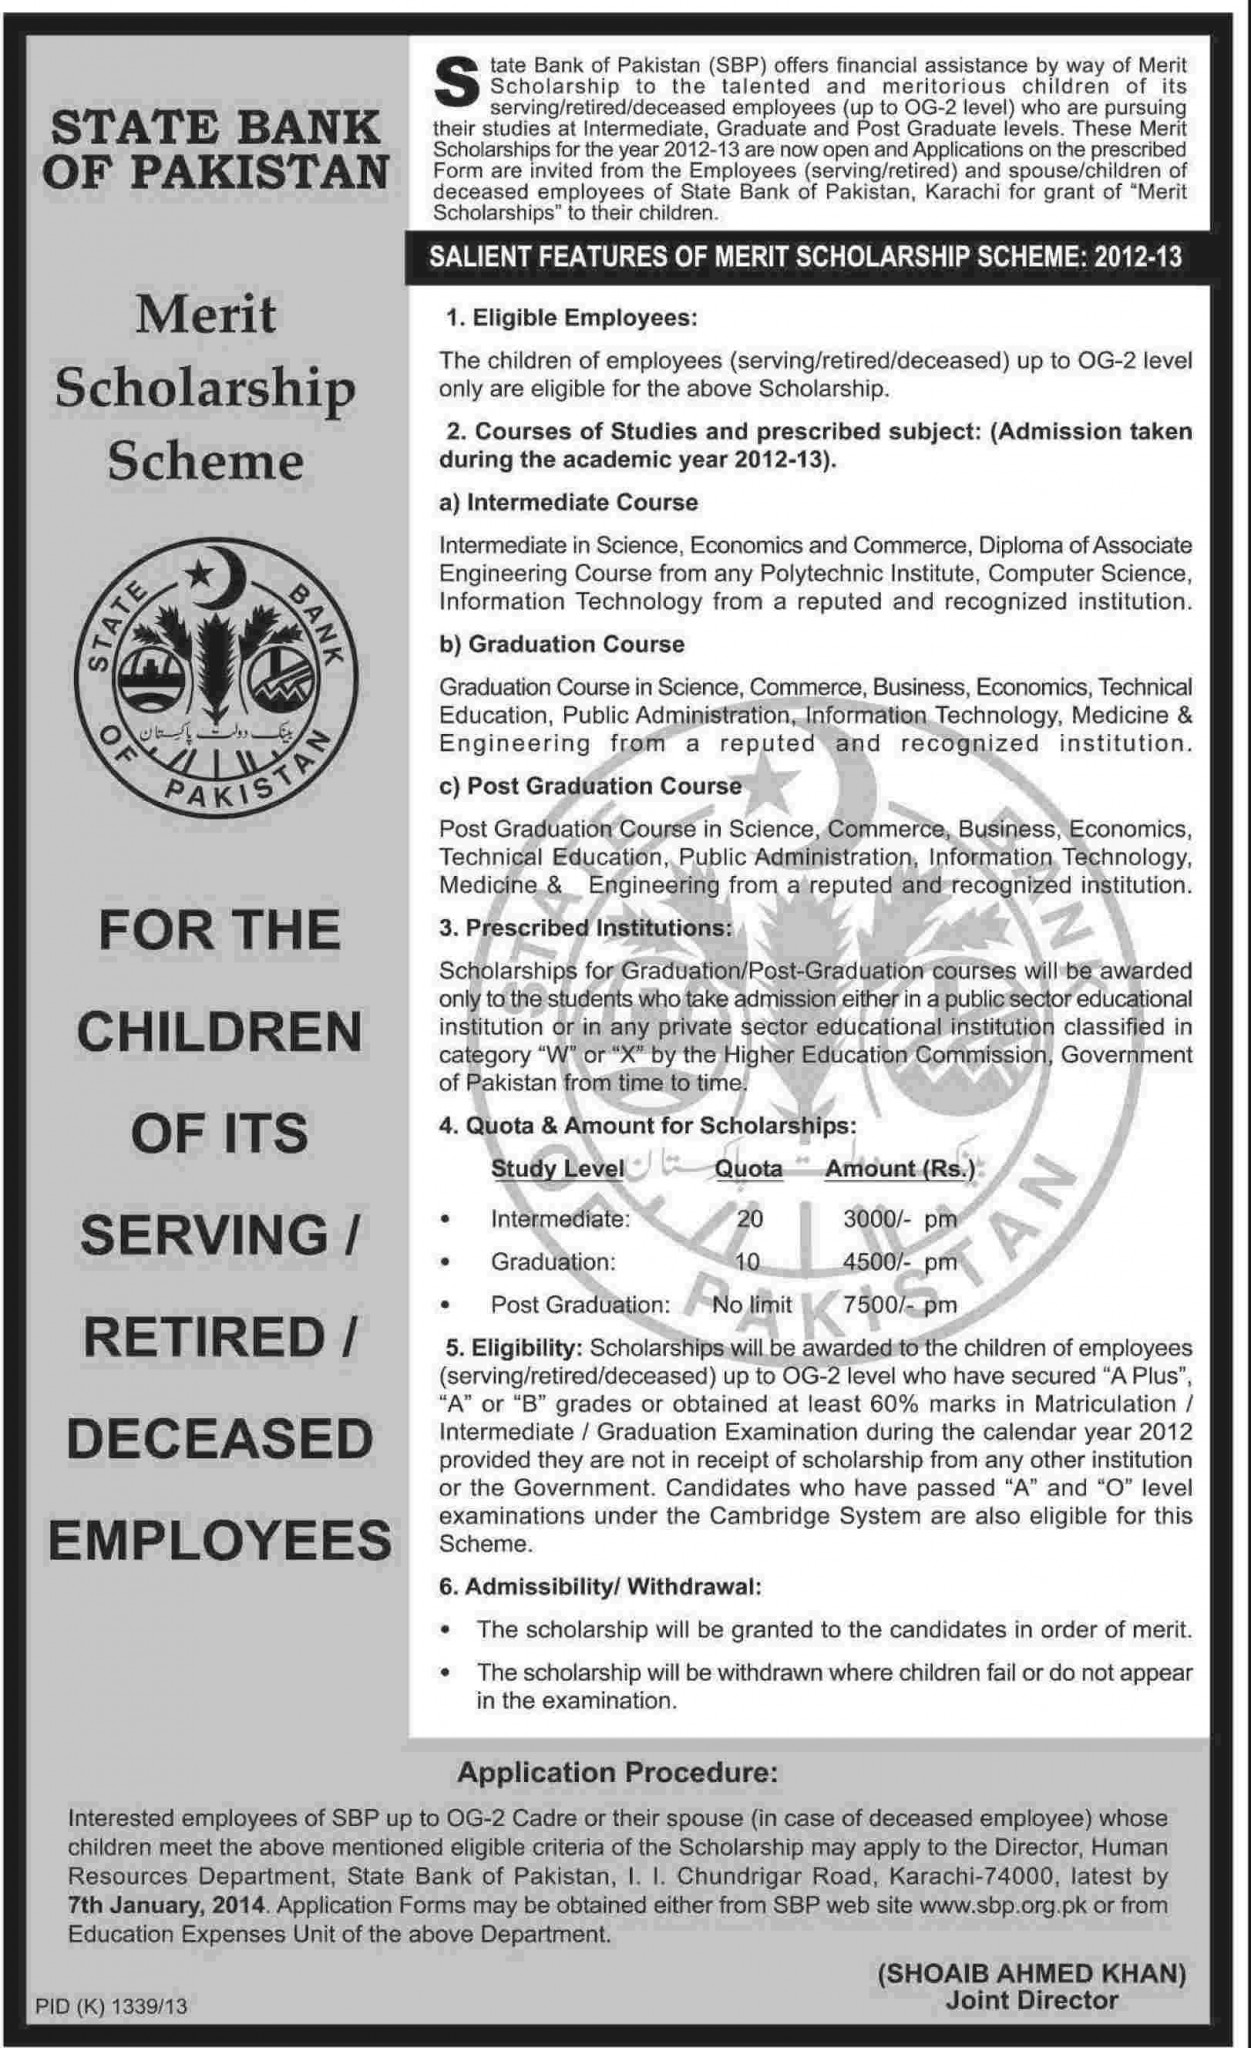 STATE BANK OF PAKISTAN MERIT SCHOLARSHIP SCHEME : for the childrens of its servining, retired and deceased Employees